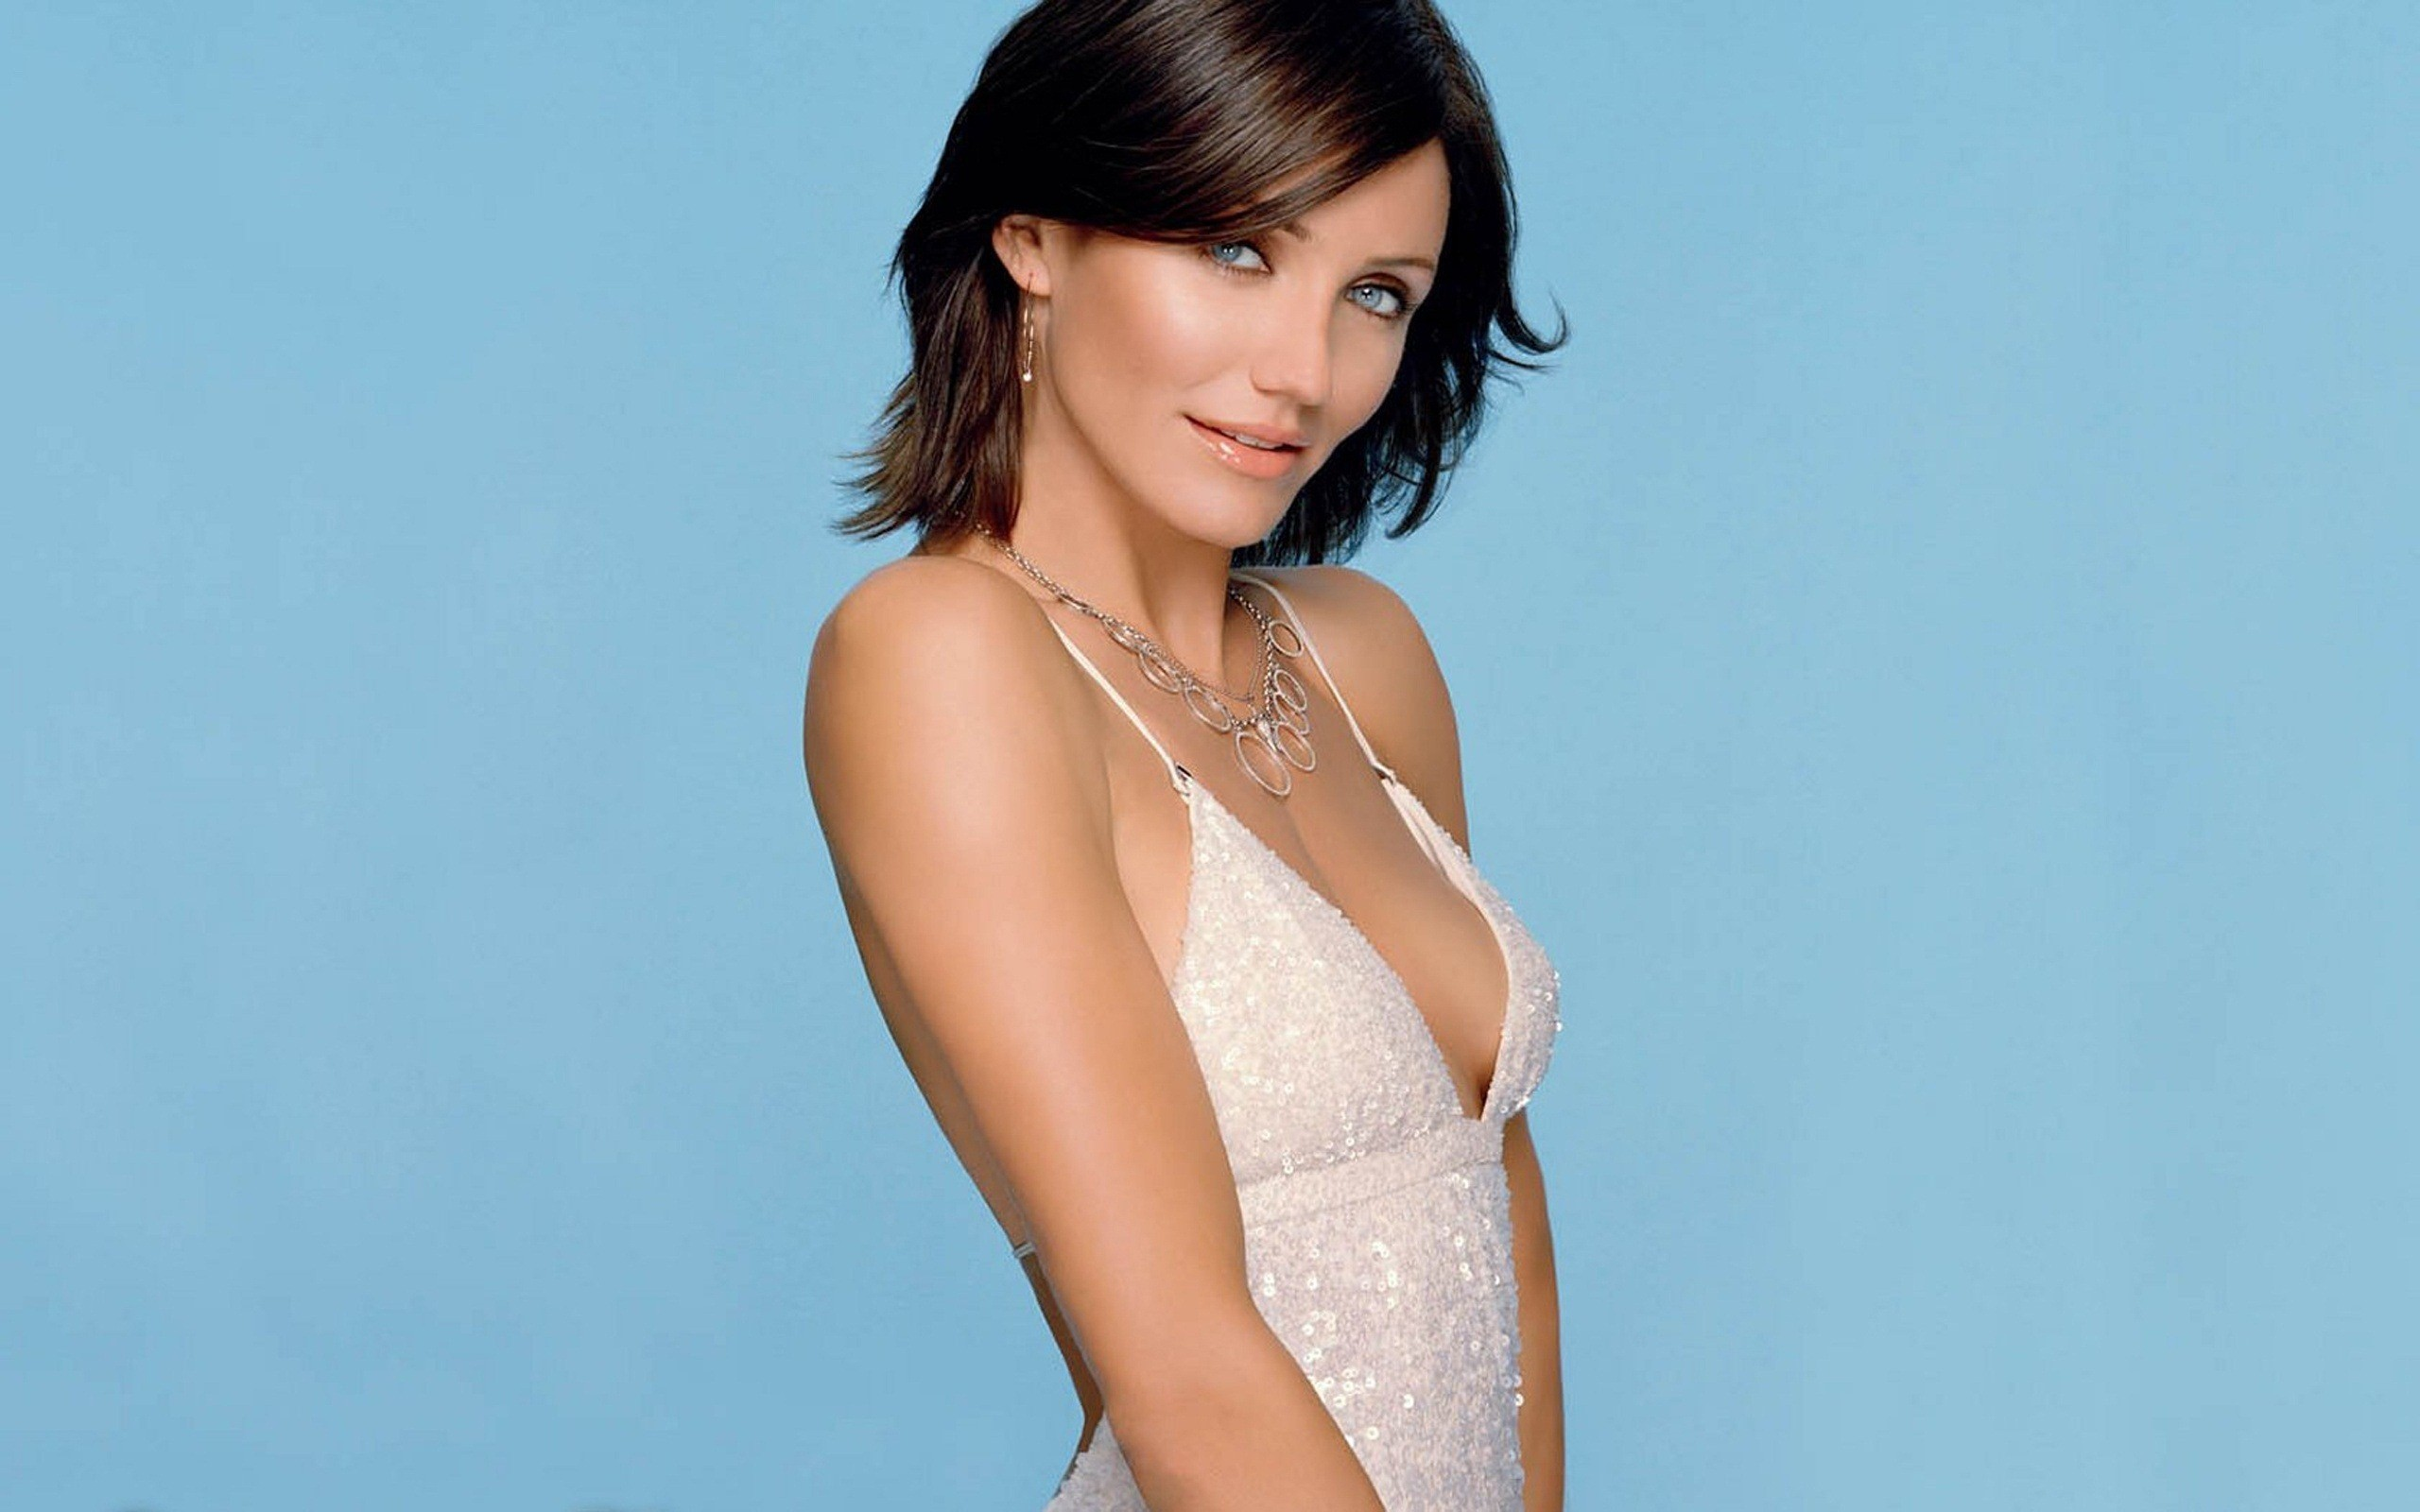 Cameron Diaz in White Top Actress HD Wallpapers 2560x1600